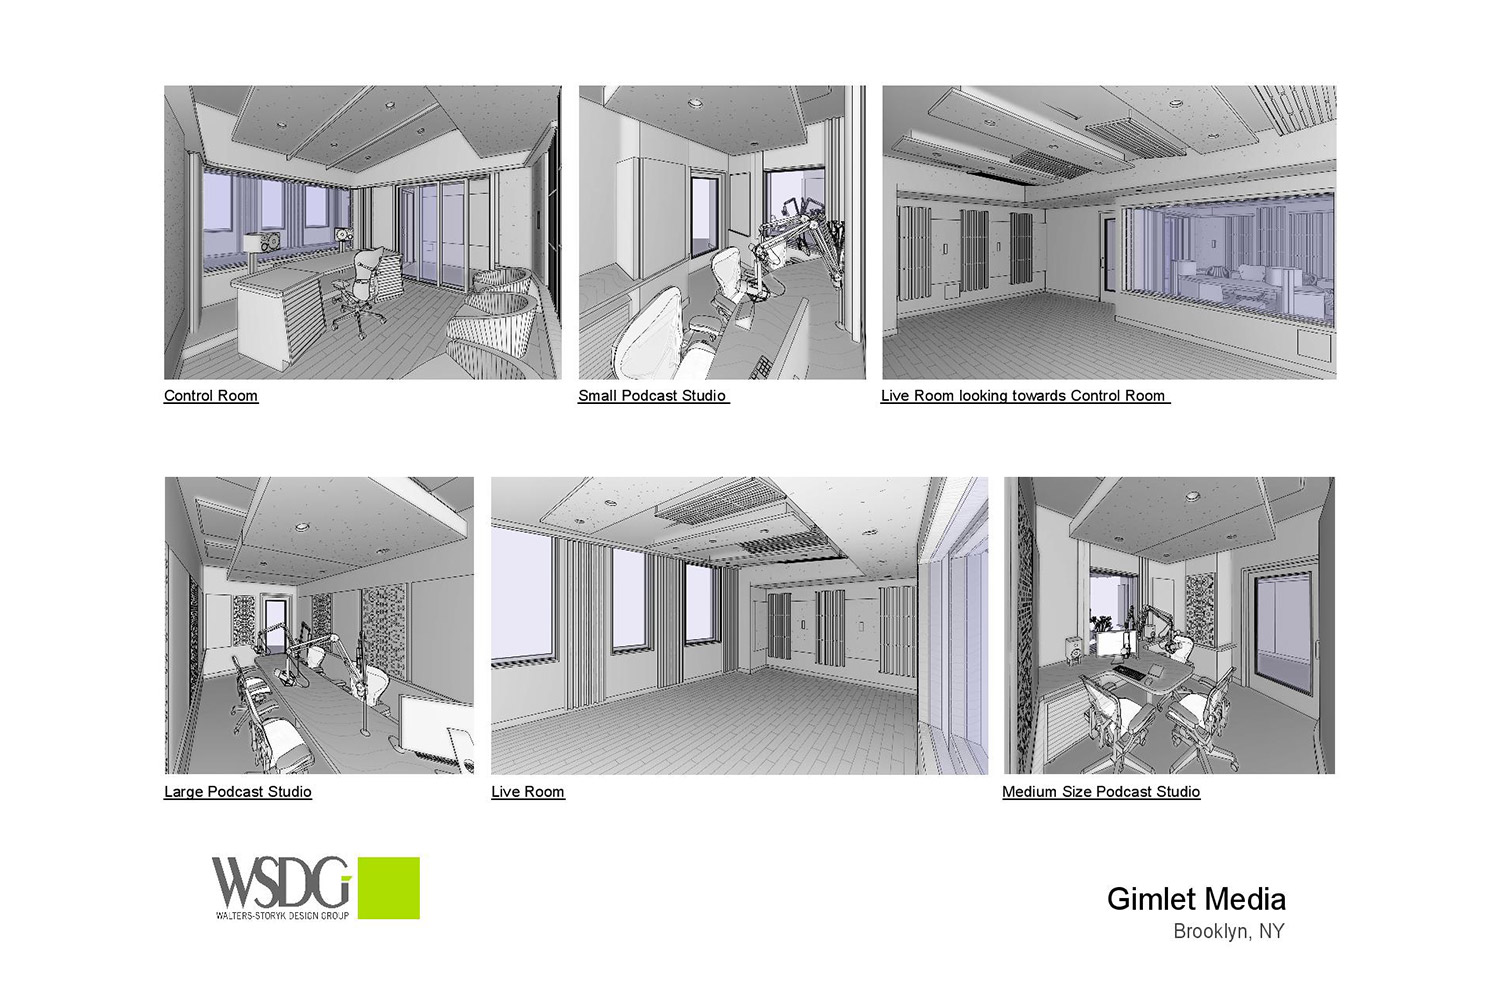 Gimlet Media, the award winning podcast production company is setting the standard in podcast creation studios with its new 28,000 square foot production facility. Designed by the acoustic architectural firm WSDG, it catapults Gimlet's podcasting operations from a modest studio operation to a commercial-grade. 3D renders.